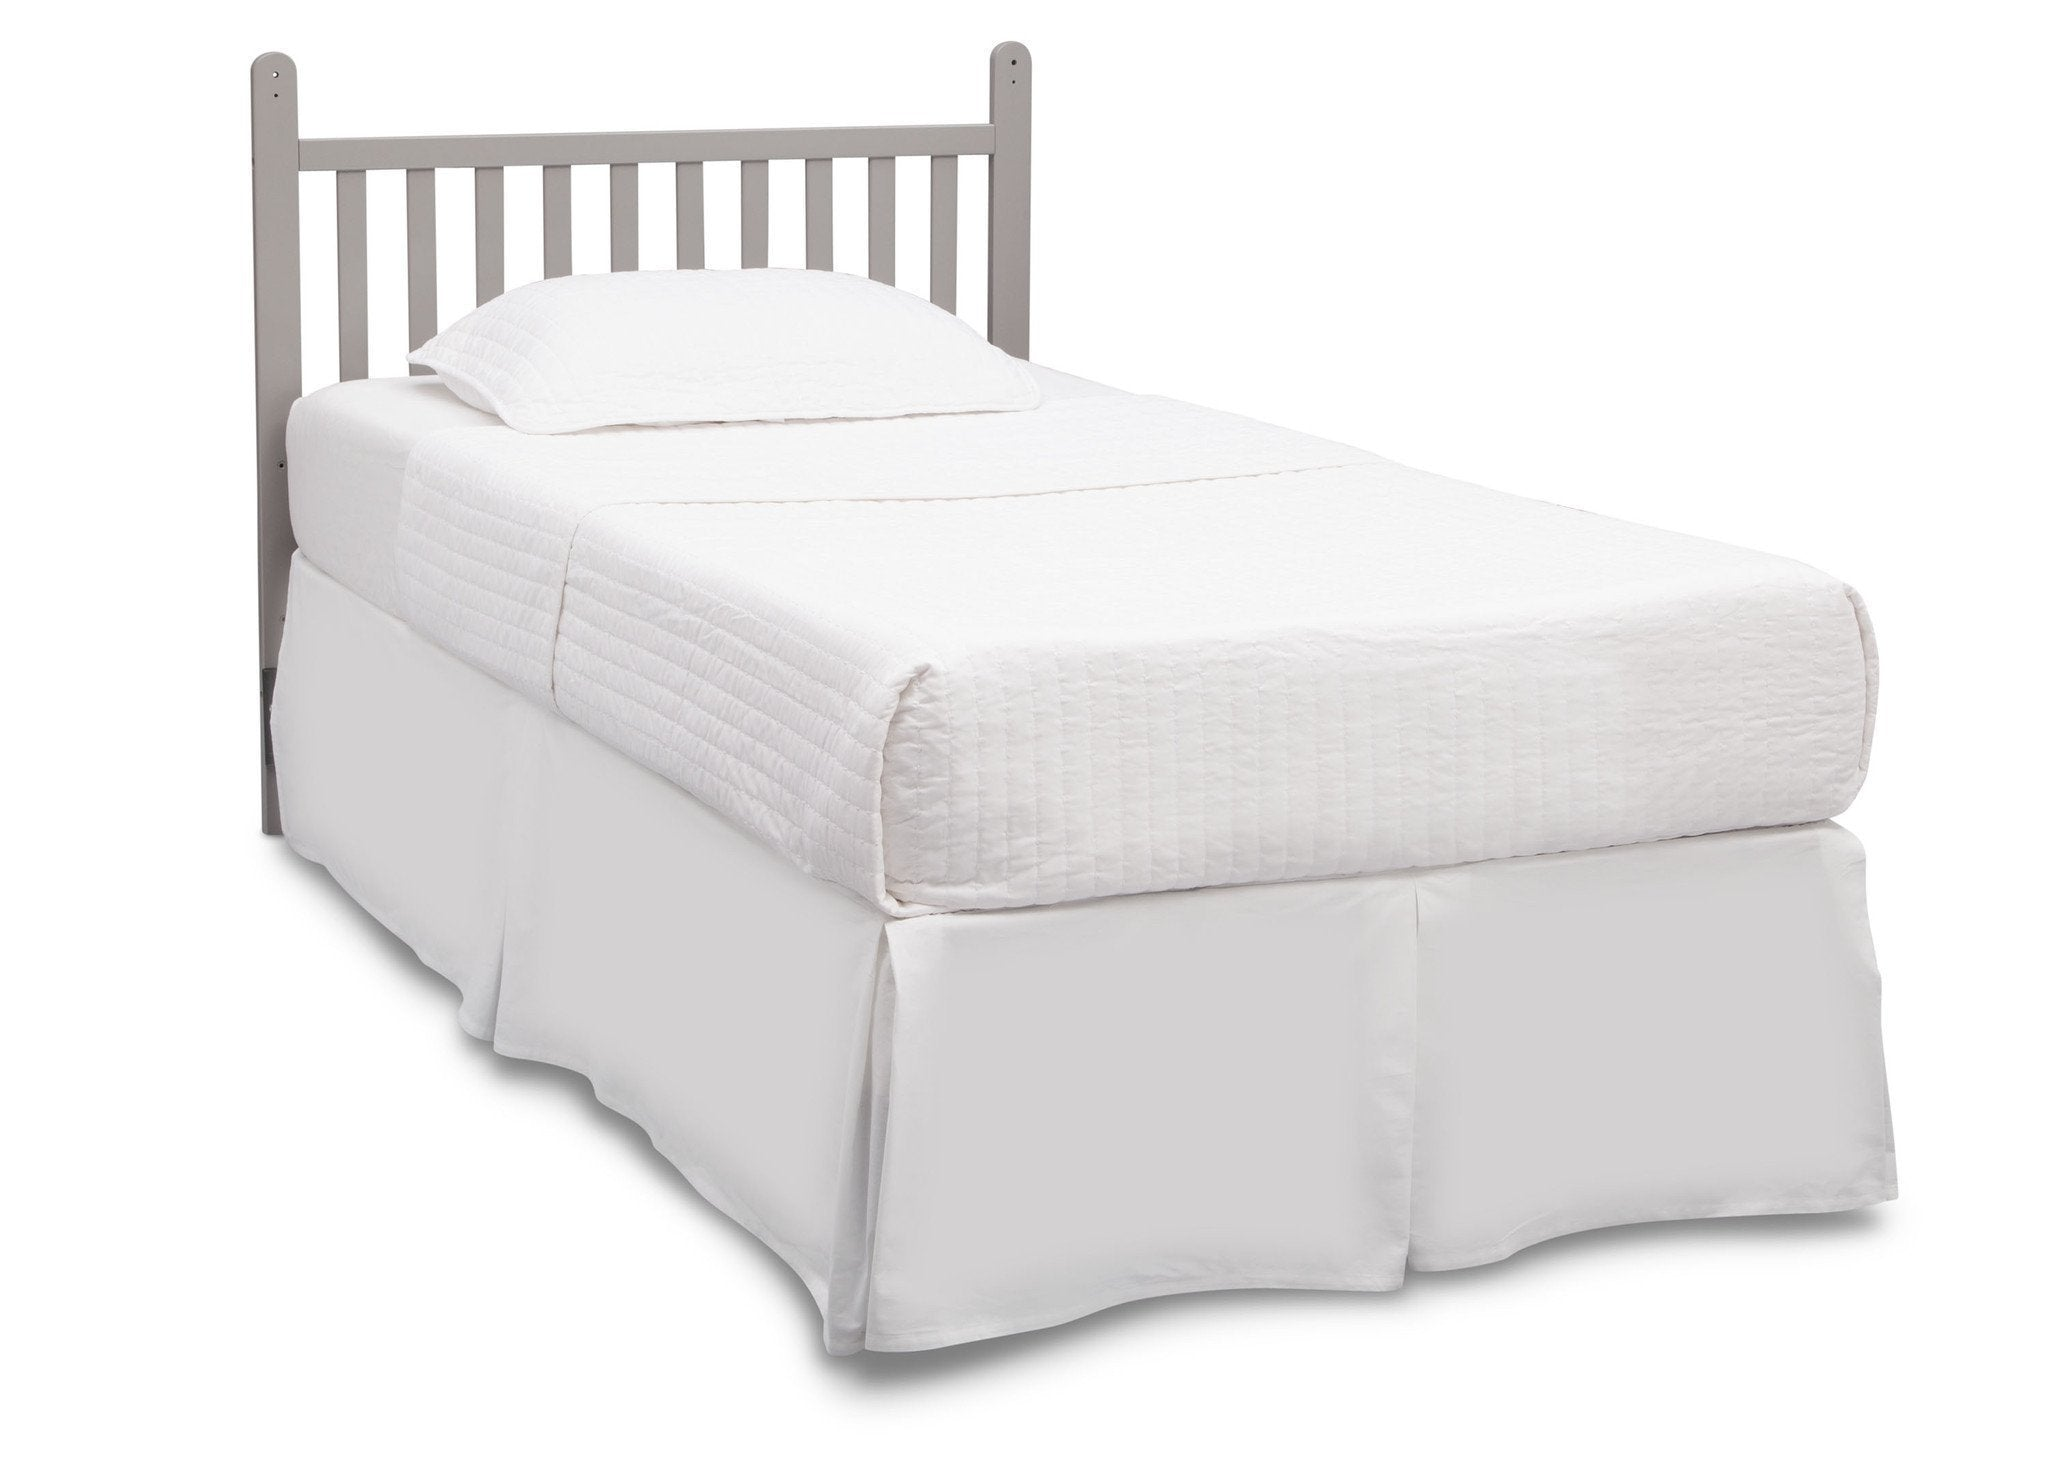 Delta Children Grey (026) Classic Mini Crib with Mattress toddler bed conversion side view b4b